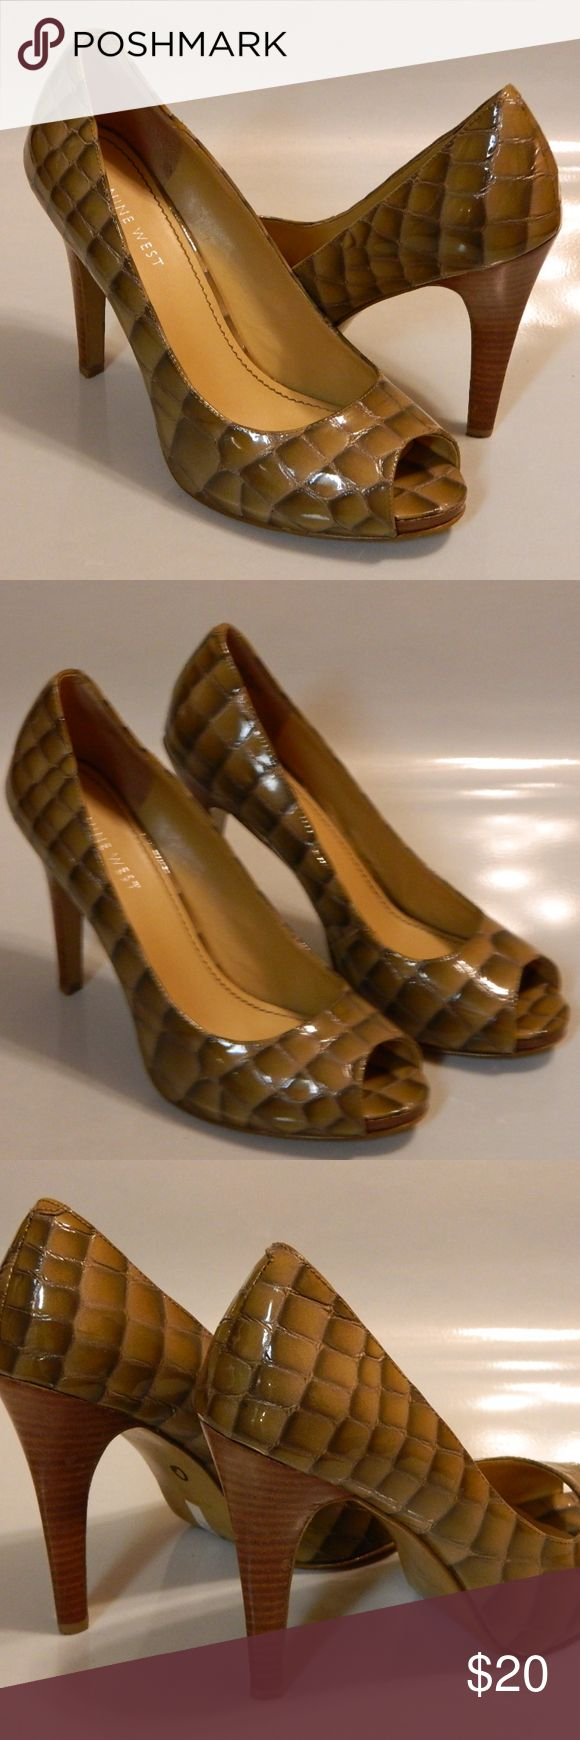 """NINE WEST Womens Pump Leather Crock Taupe 8M EUC NINE WEST Escher Women's High Heels Shoes Peep Toe Leather Croc Taupe Sz 8M EUC  ·        Brand: Nine West ·        Style: Escher ·        Color: Taupe ·        Material: Patent Leather ·        Pattern: Animal Print (Croc) ·        Heel Type: Stiletto 4 1/4"""" ·        Size: 8 ·        Width: Medium ·        Country/Region of Manufacturer: --- ·        Condition: Excellent Used Condition (Significant wear to bottom soles only.) Nine West Shoes…"""